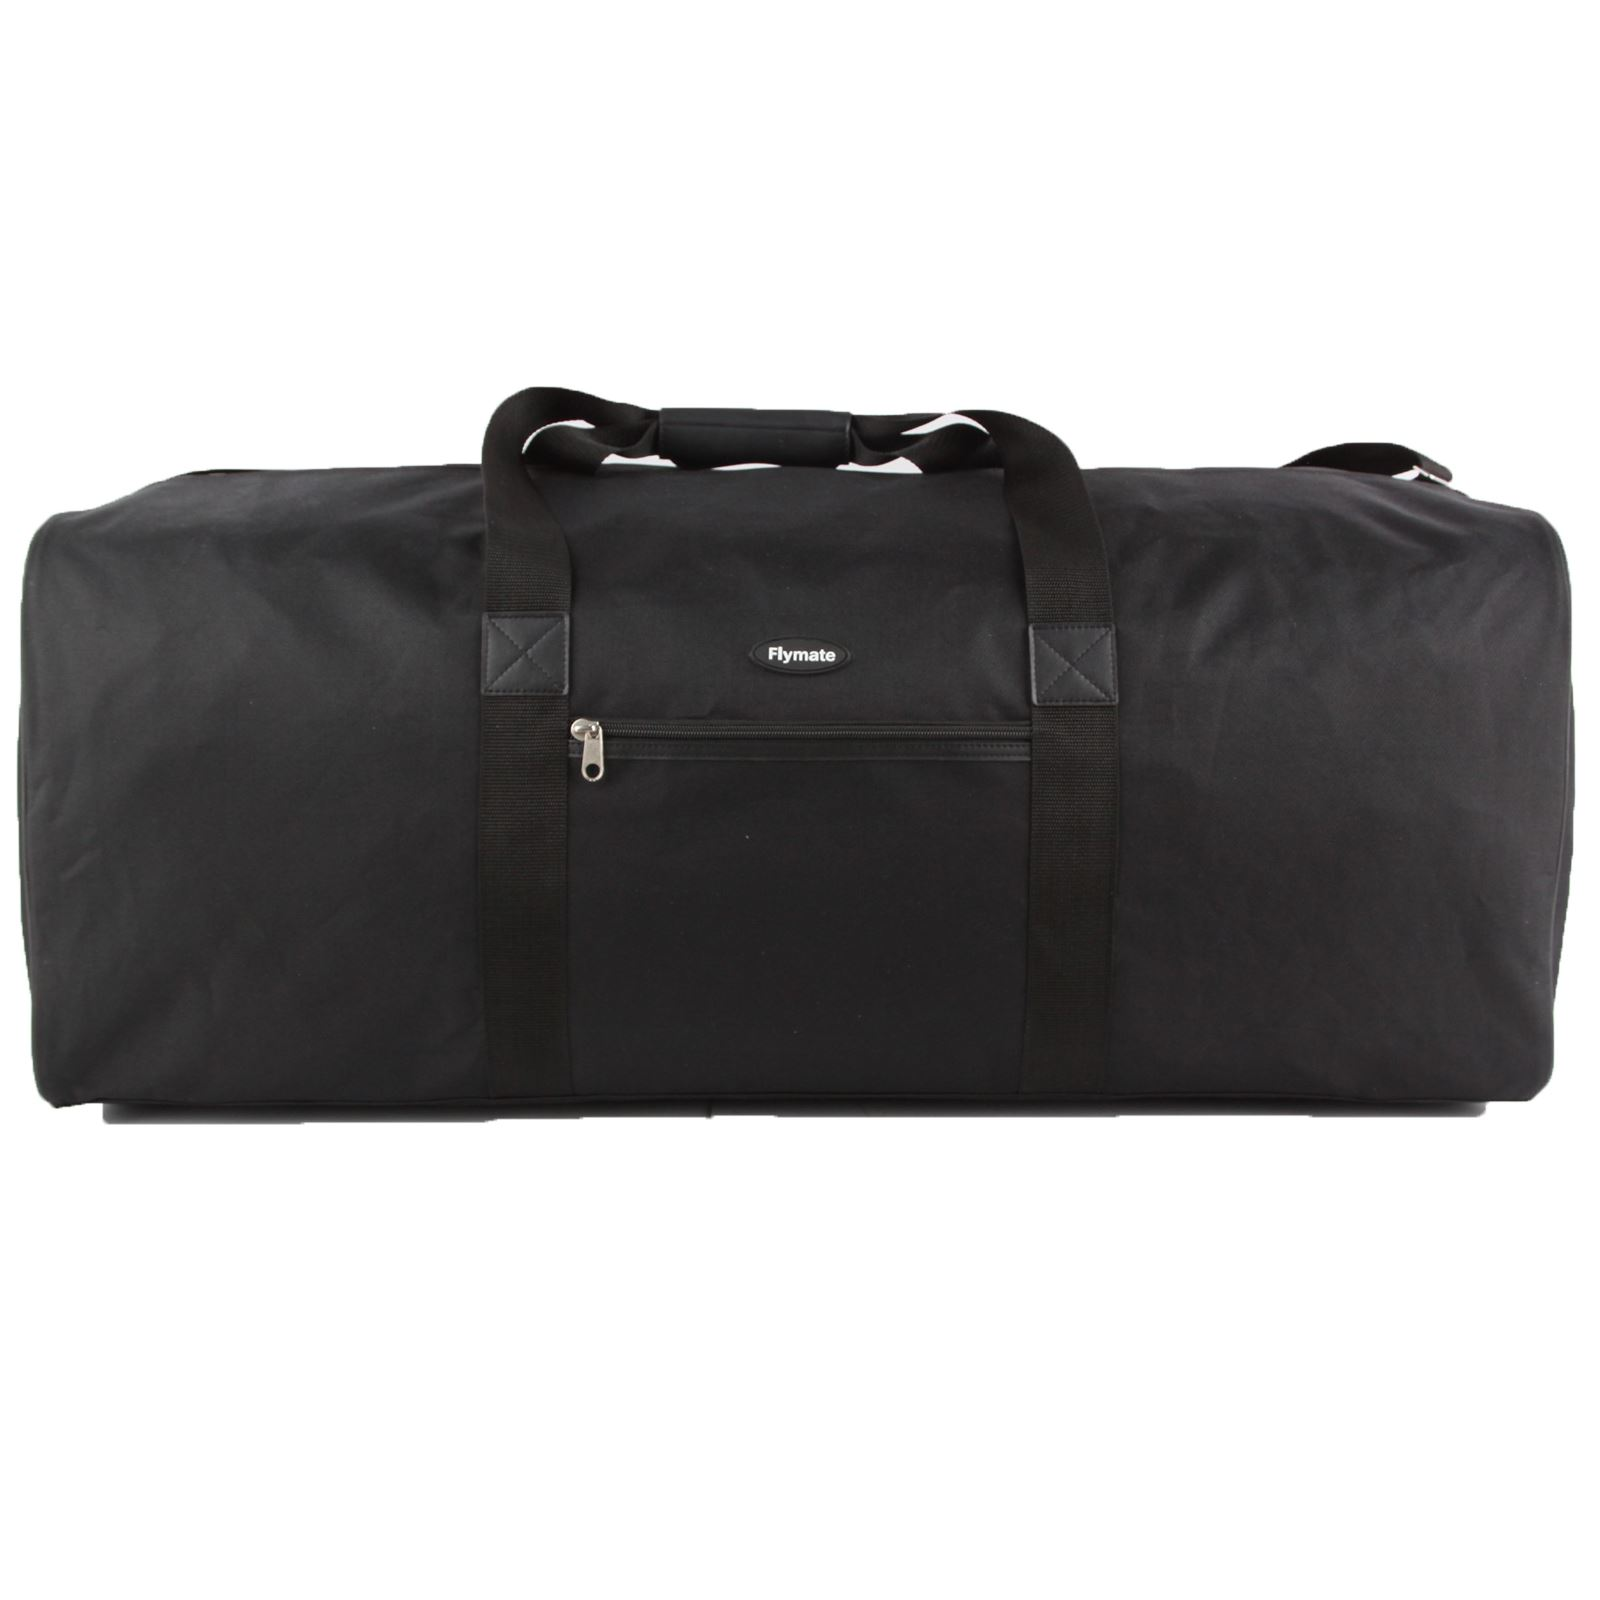 XXL-EXTRA-LARGE-36-034-HOLDALL-TRAVEL-SPORTS-GYM-CAMPING-HOLDALL-DUFFLE-BAG-200L